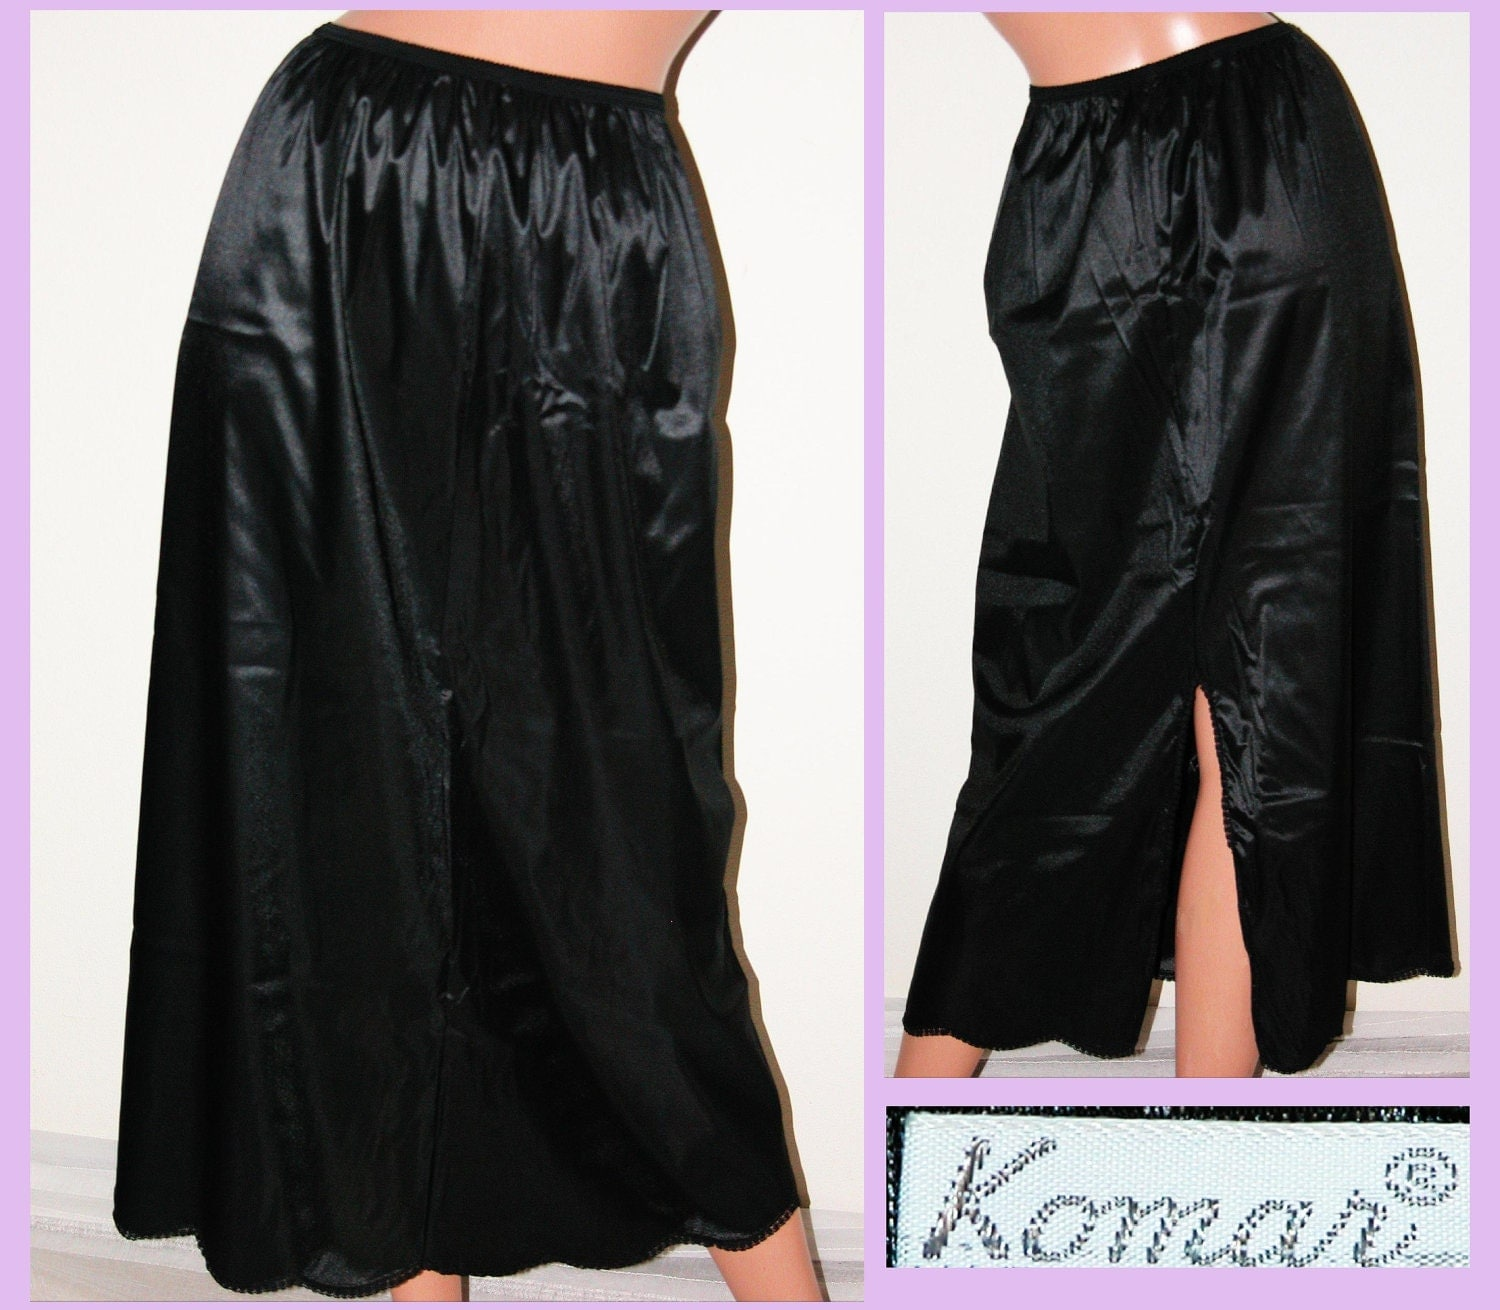 Taffeta Slip for sale in UK 68 used Taffeta Slips